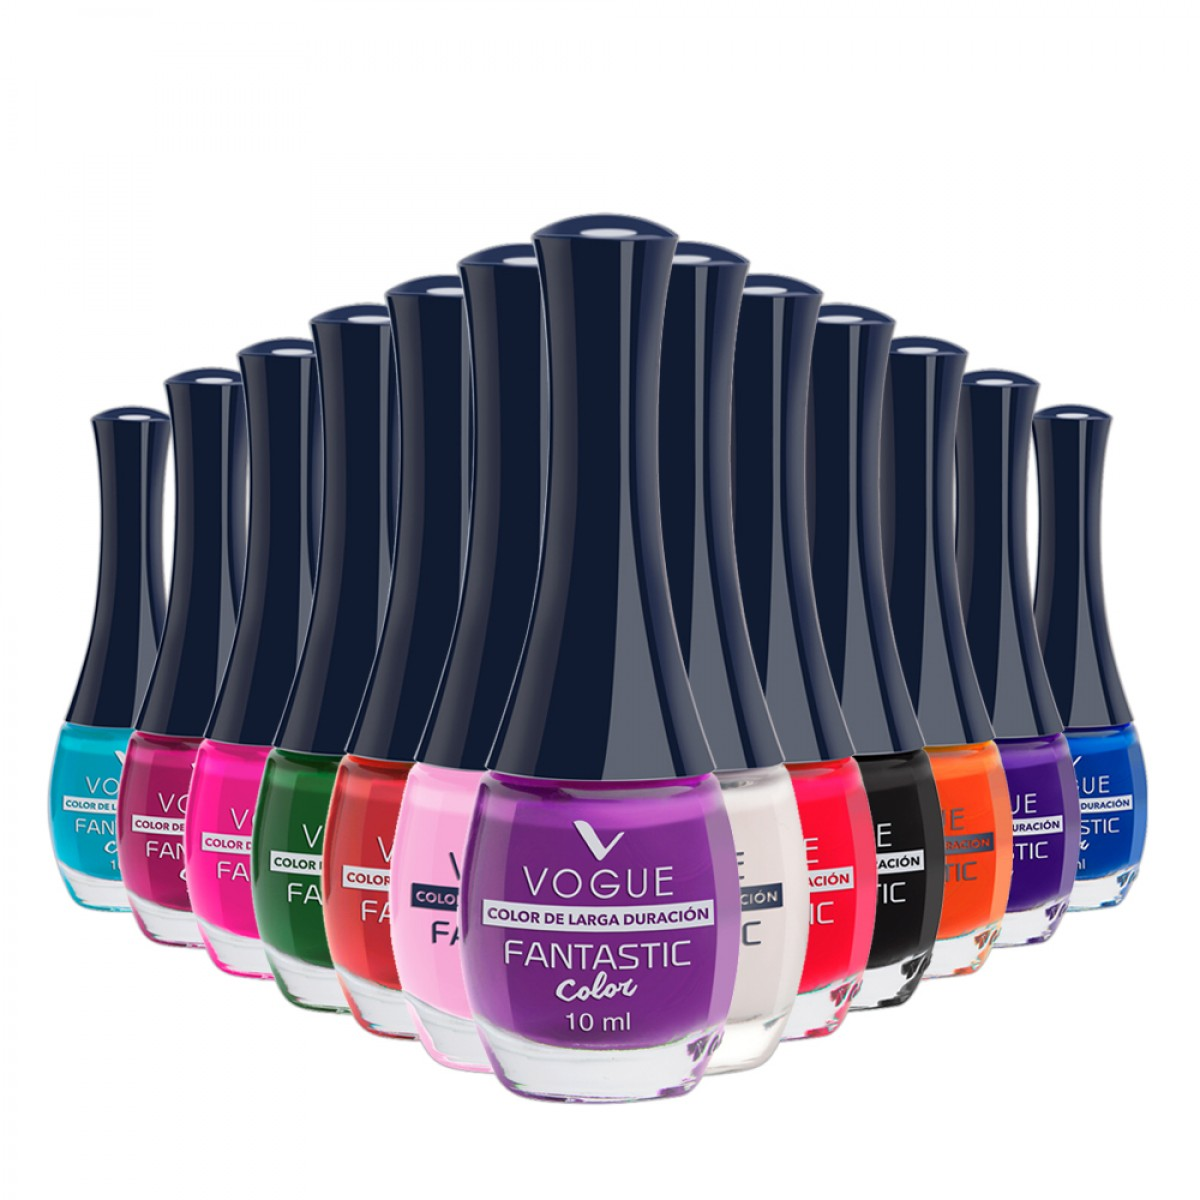 a3d3e33bff Esmalte para uñas Vogue Fantastic color 10ml